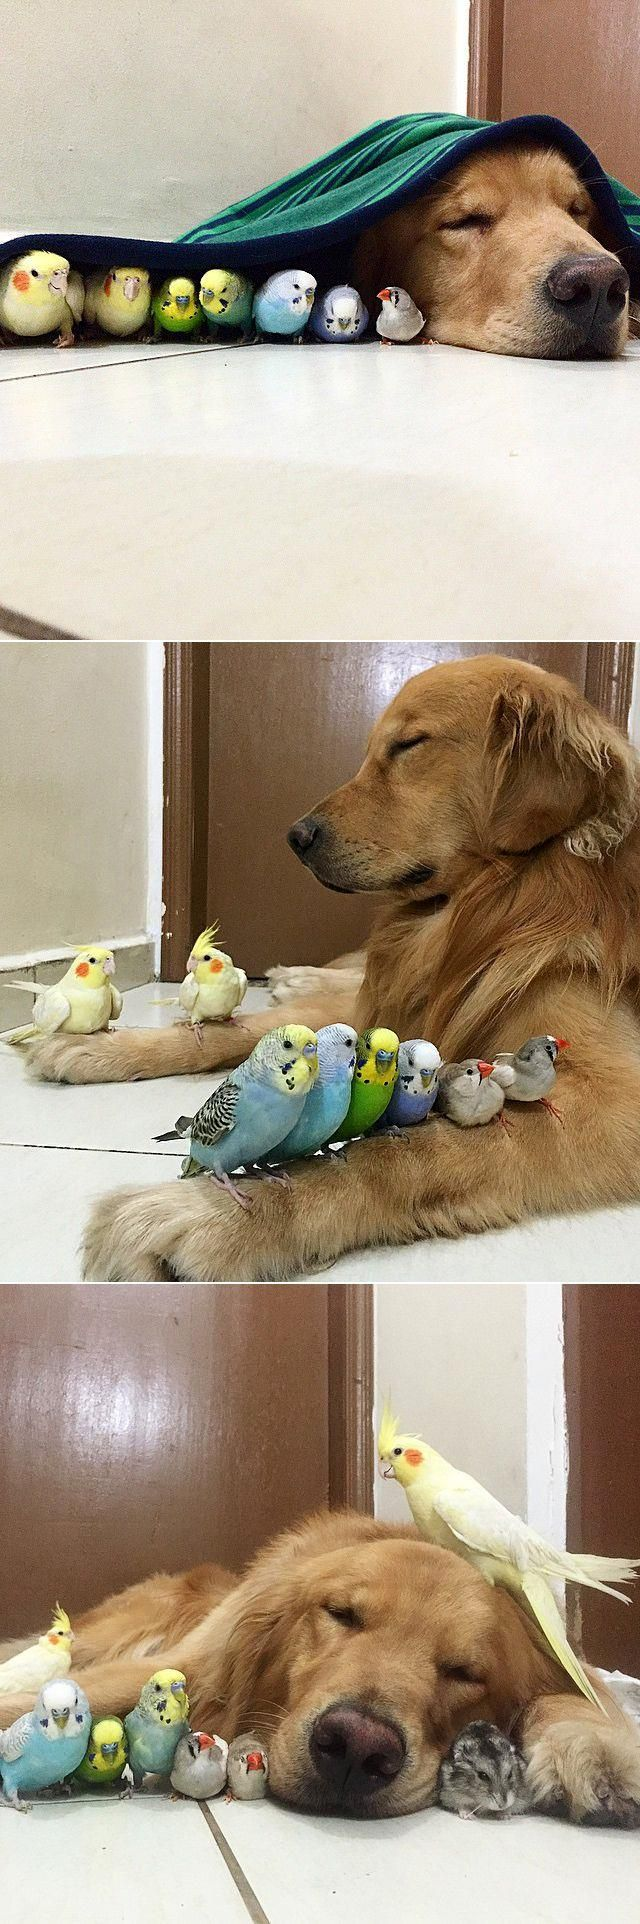 A Dog, 8 Birds and a Hamster Are the Most Unusual Best Friends EVER.  #cuteanimals #babyanimals